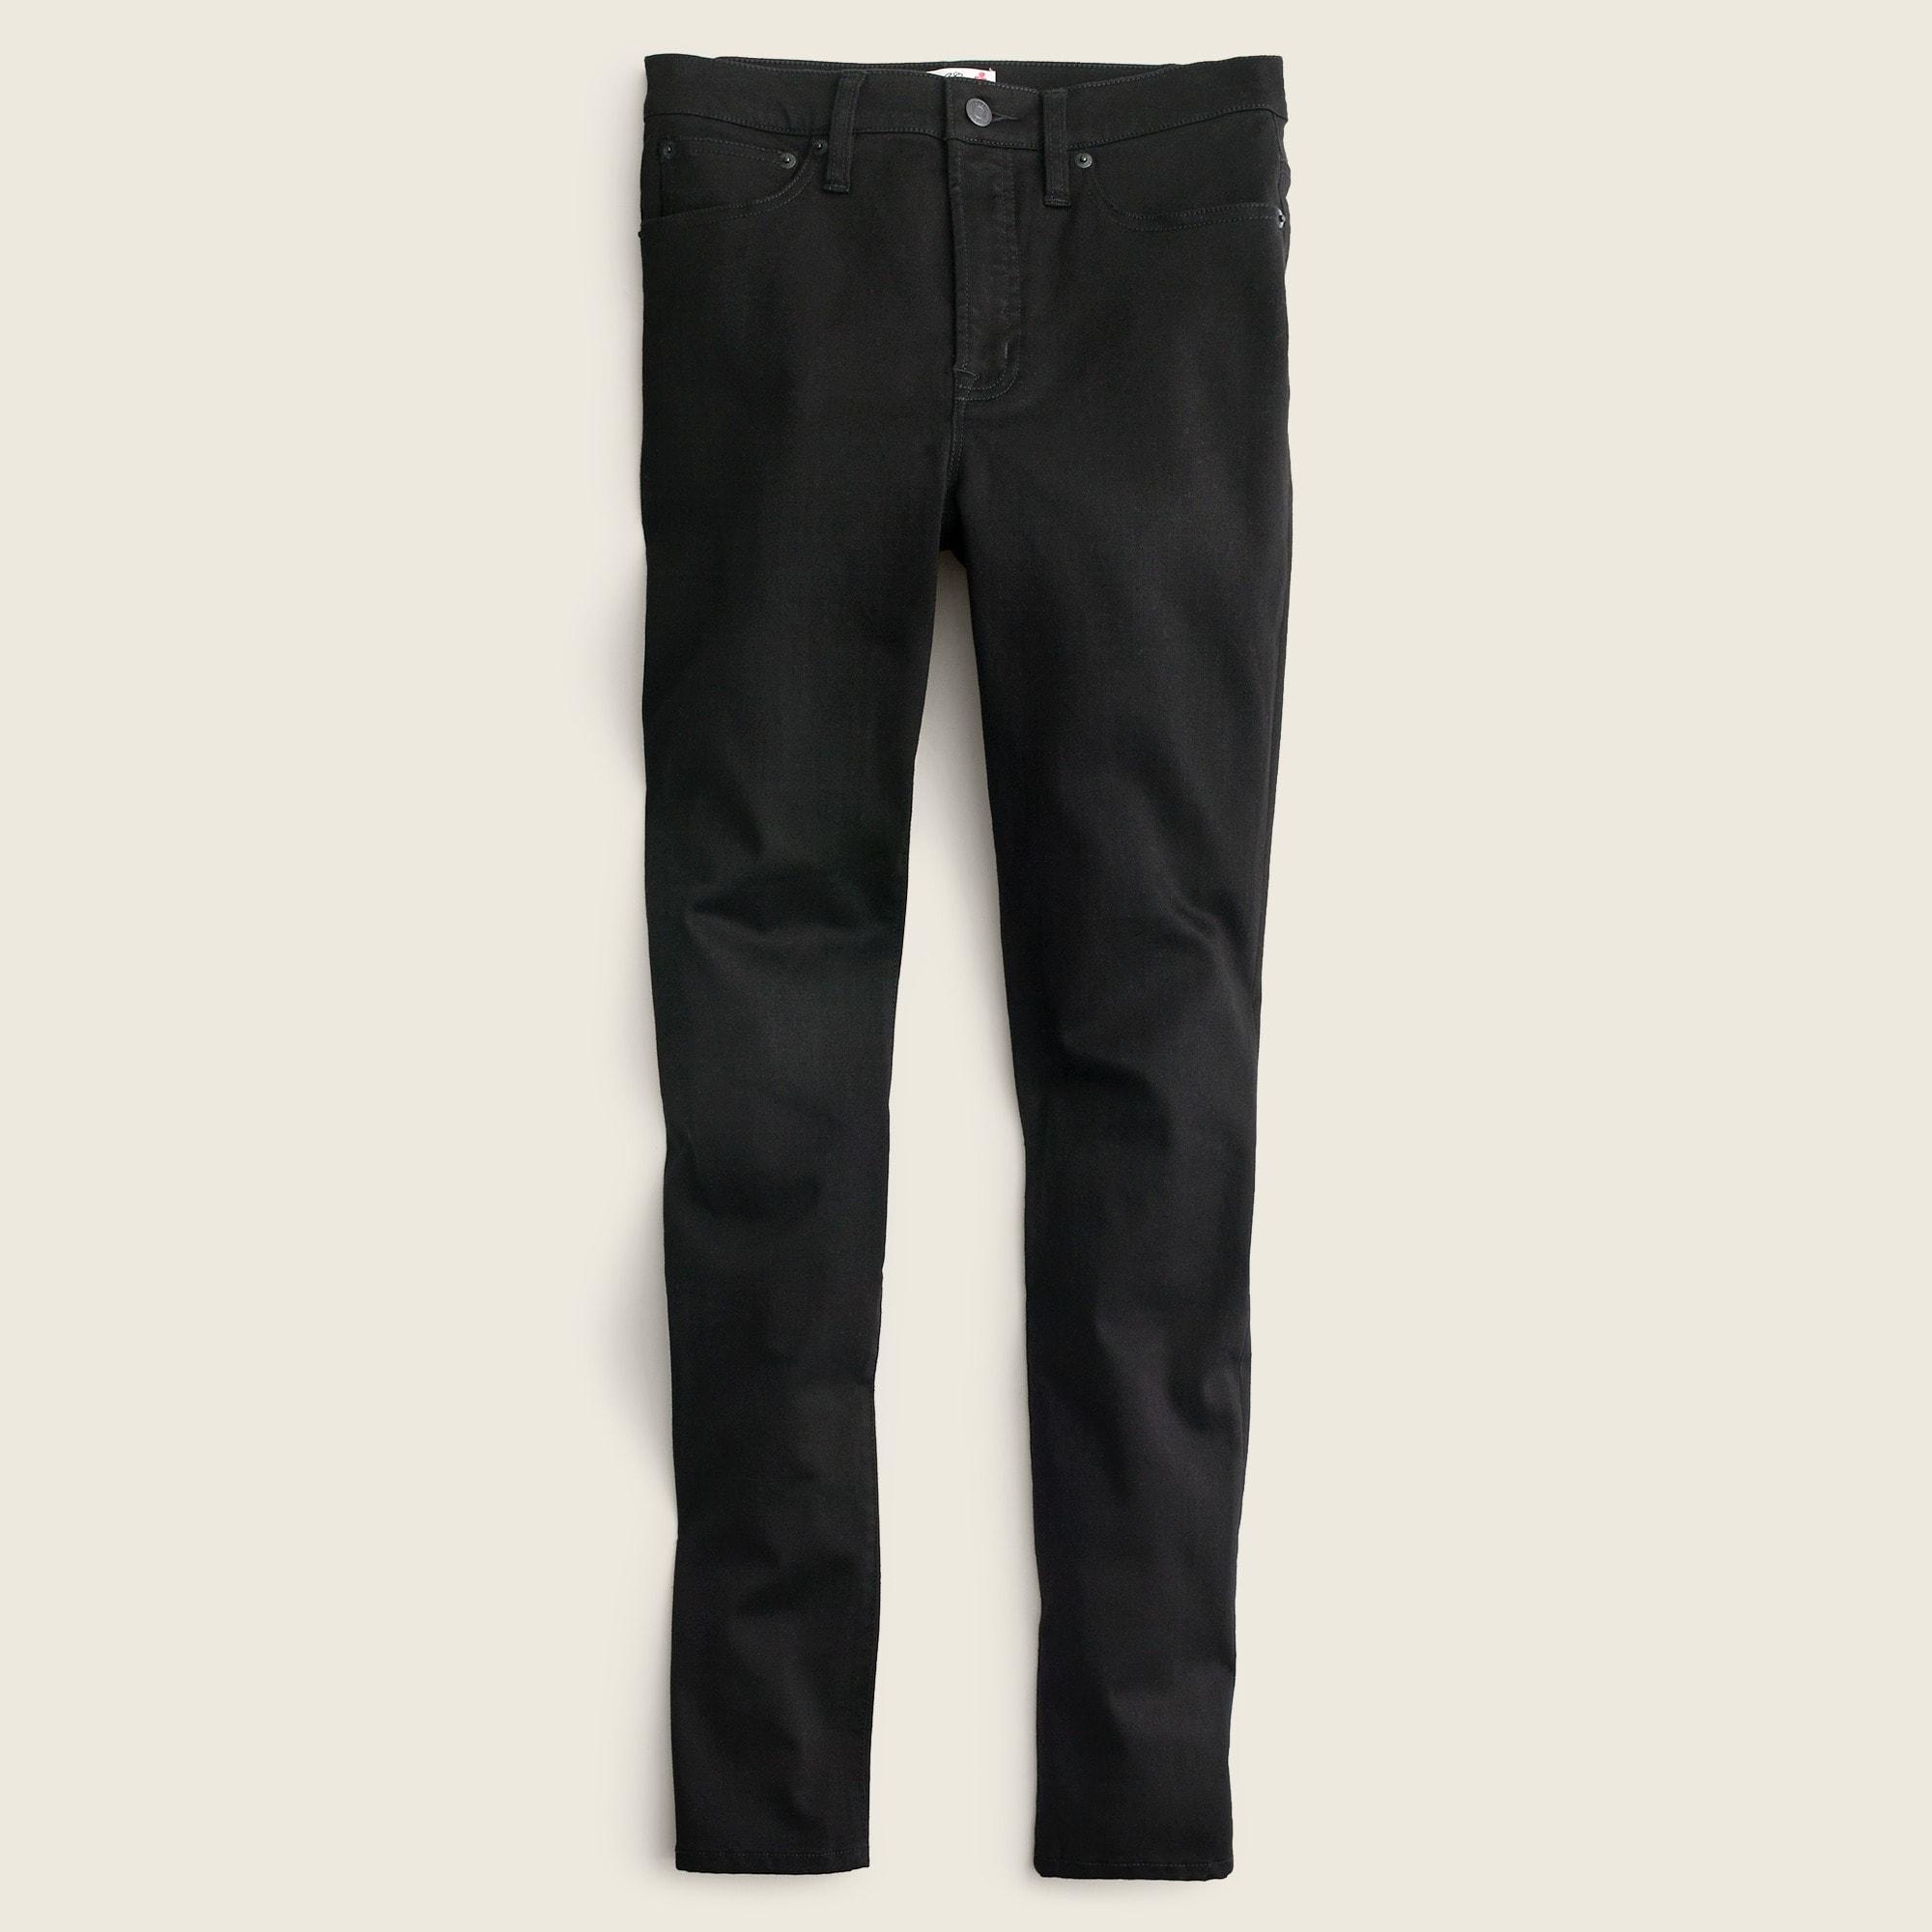 "Tall 10"" highest-rise toothpick jean in true black"